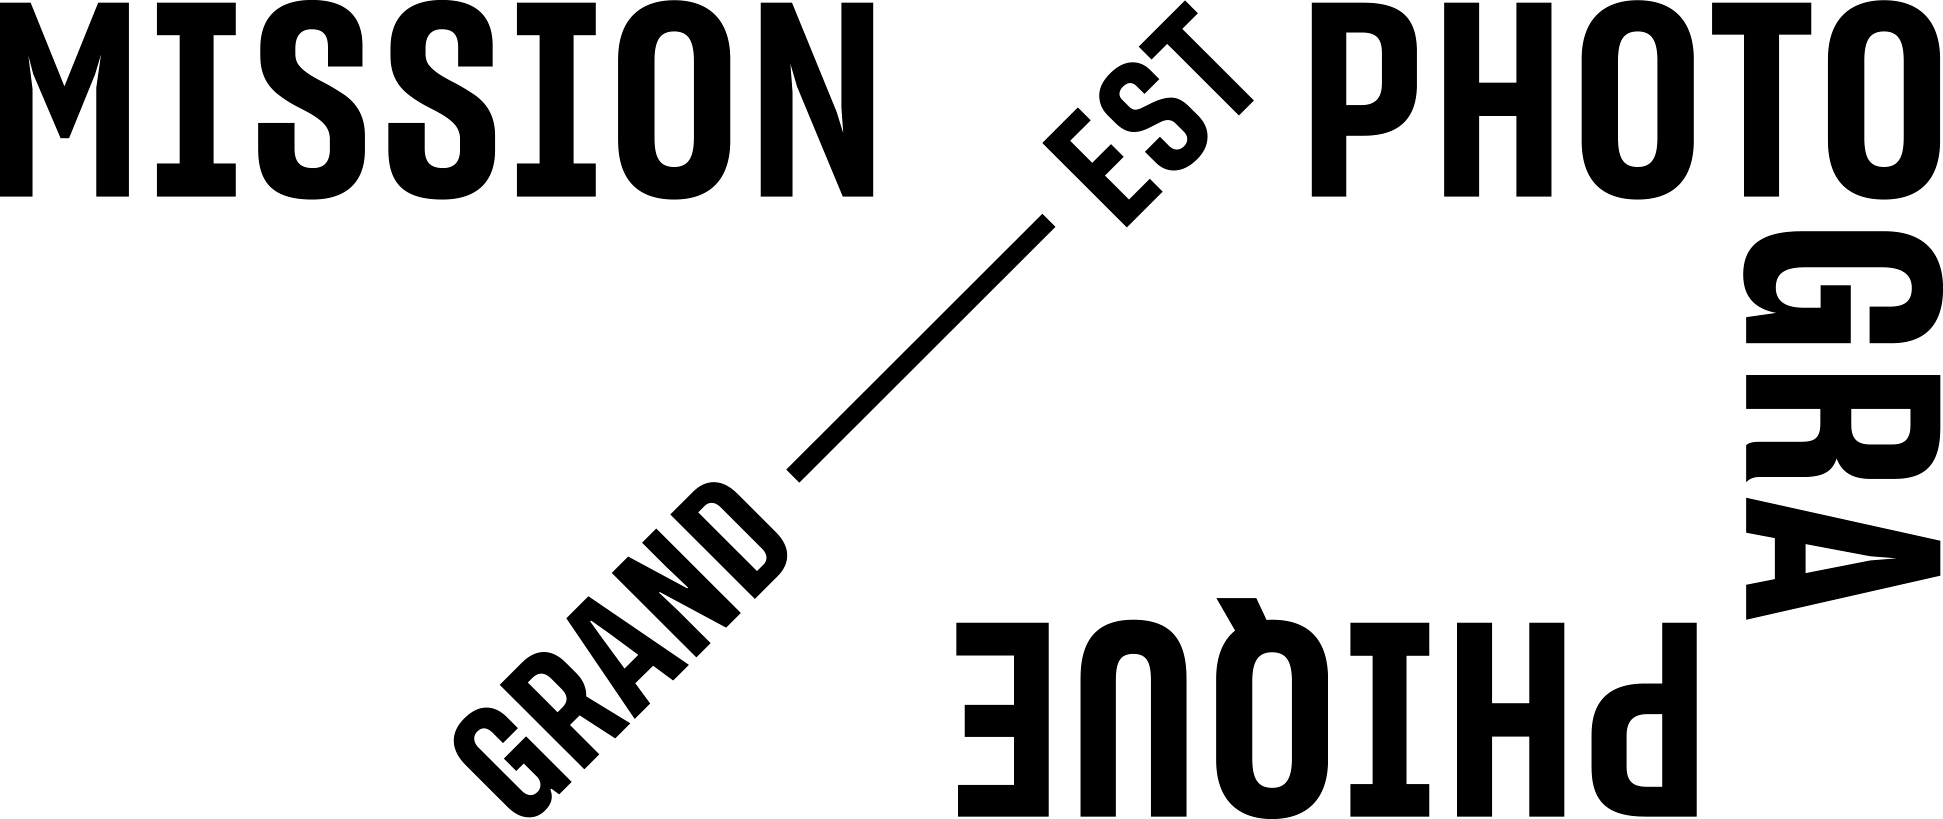 Mission Photographique Grand Est